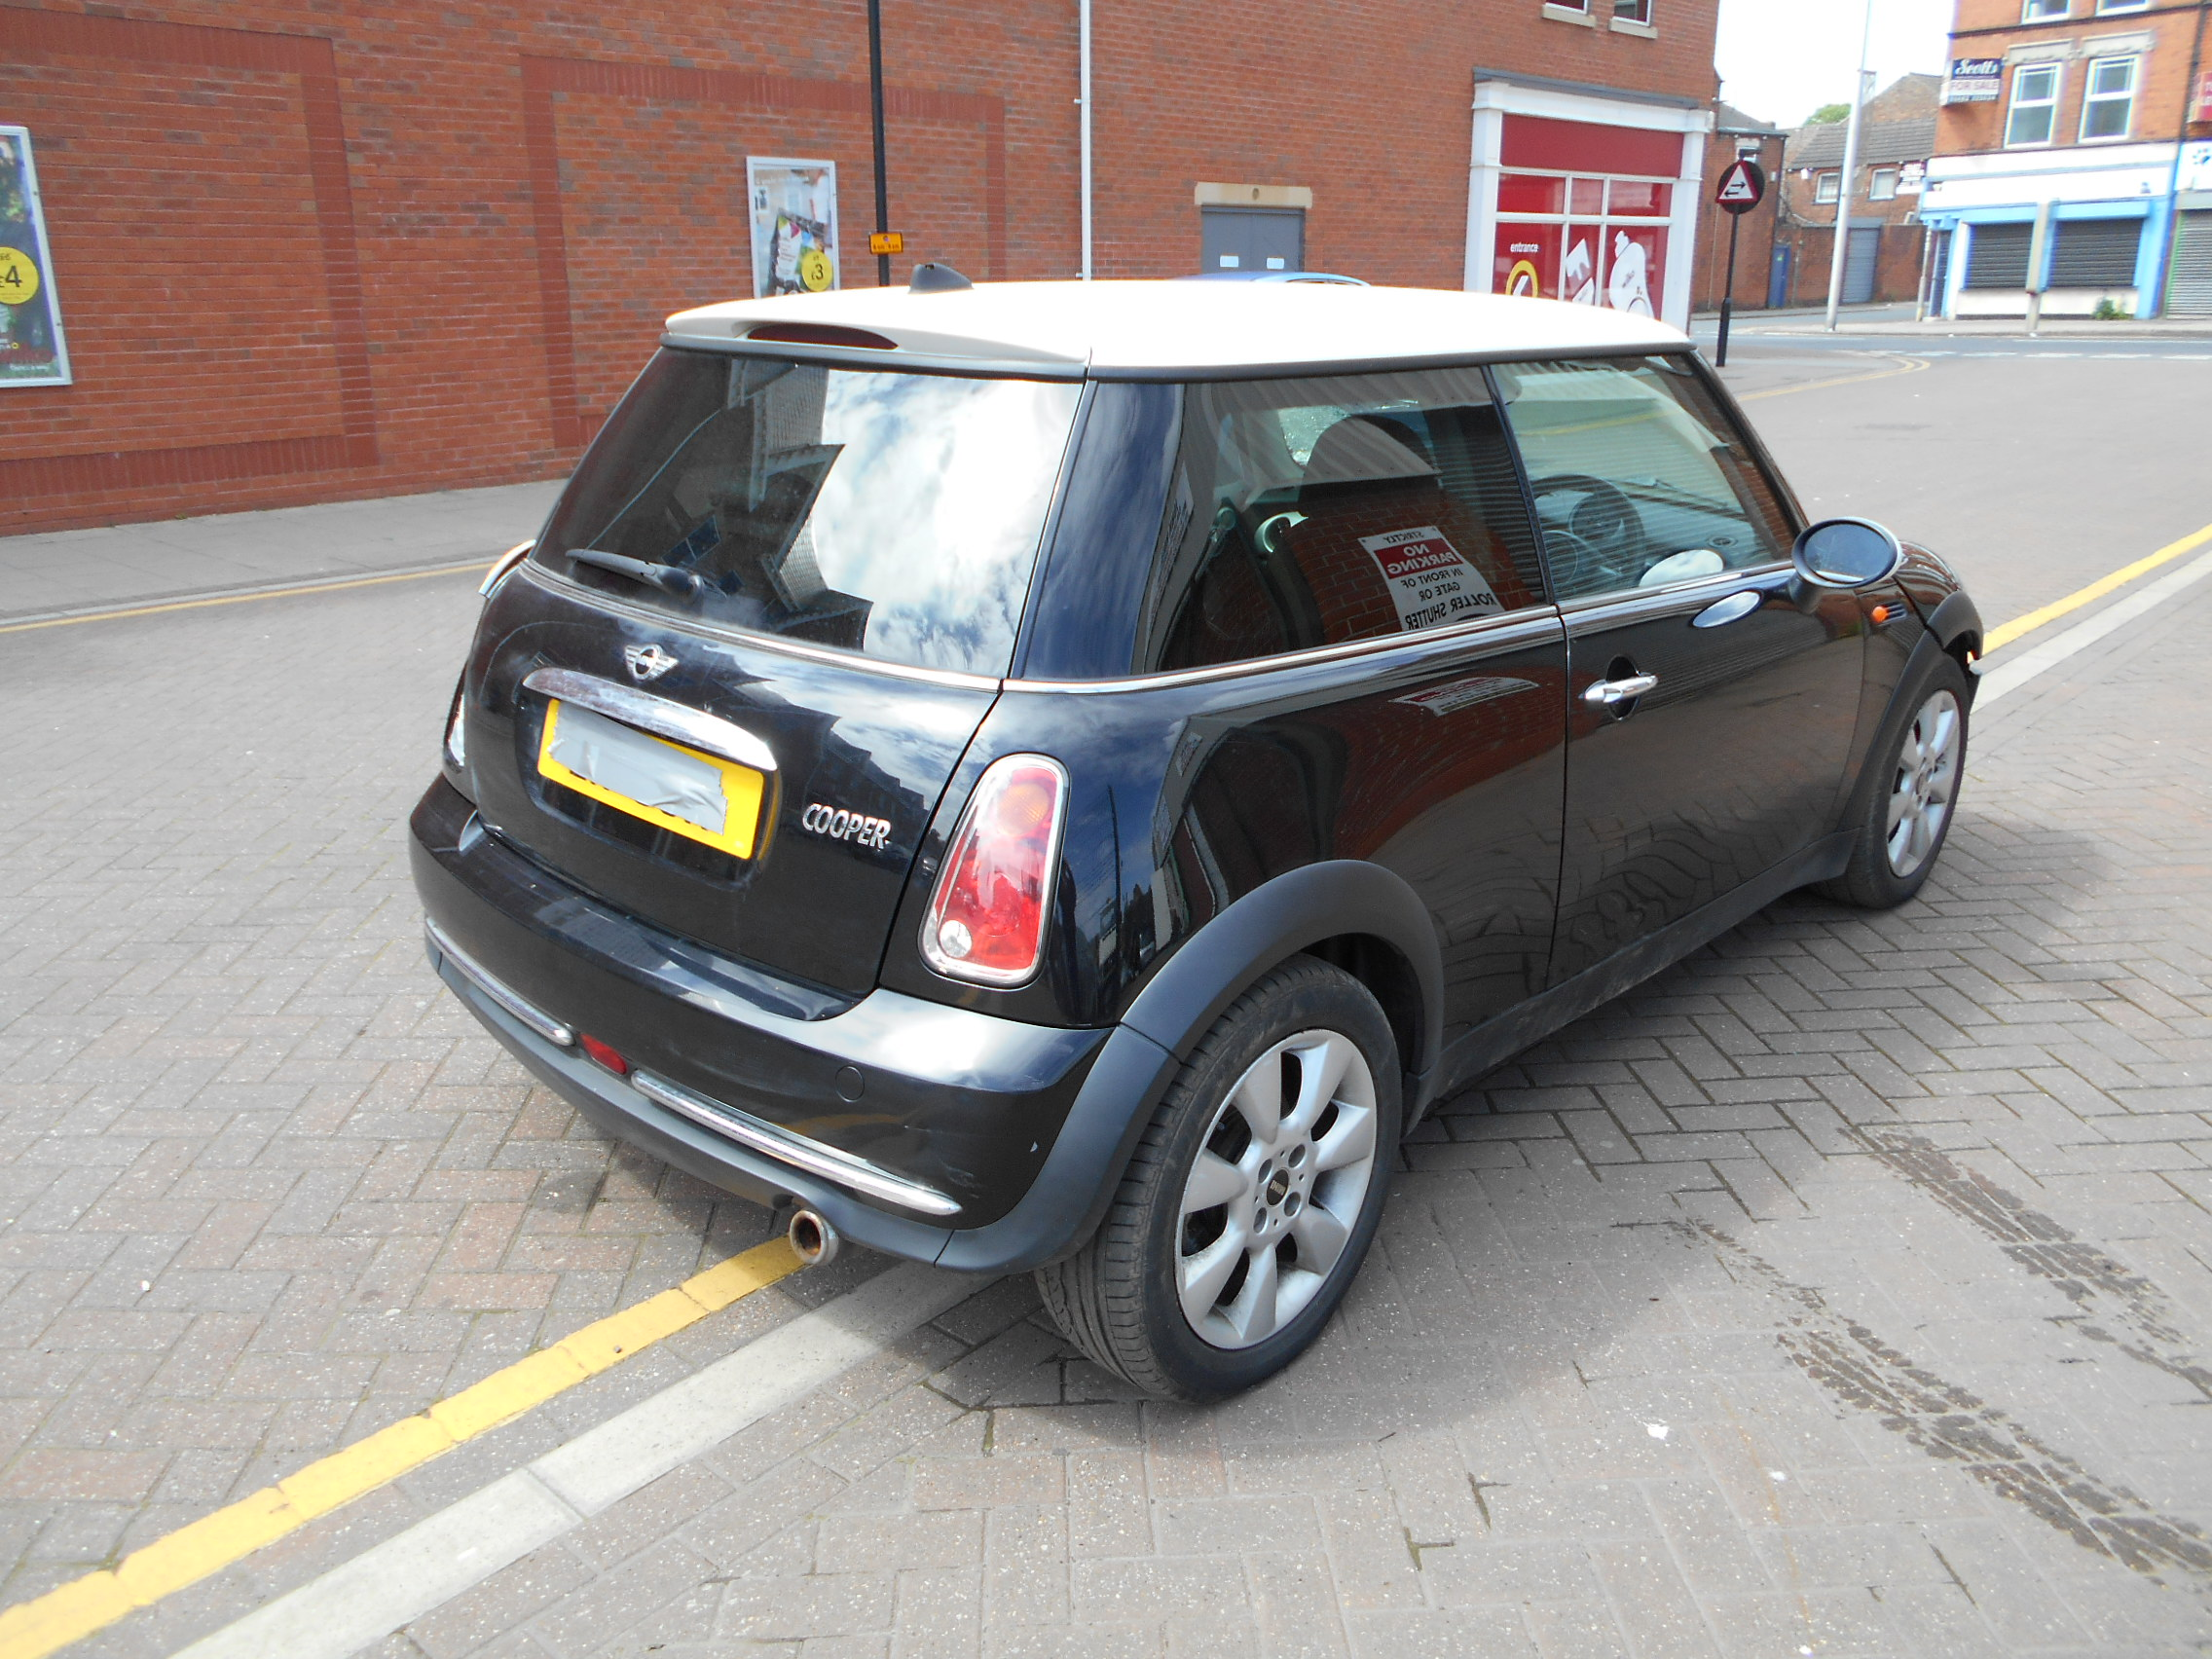 04 Black 1.6 BMW Mini Cooper - 4